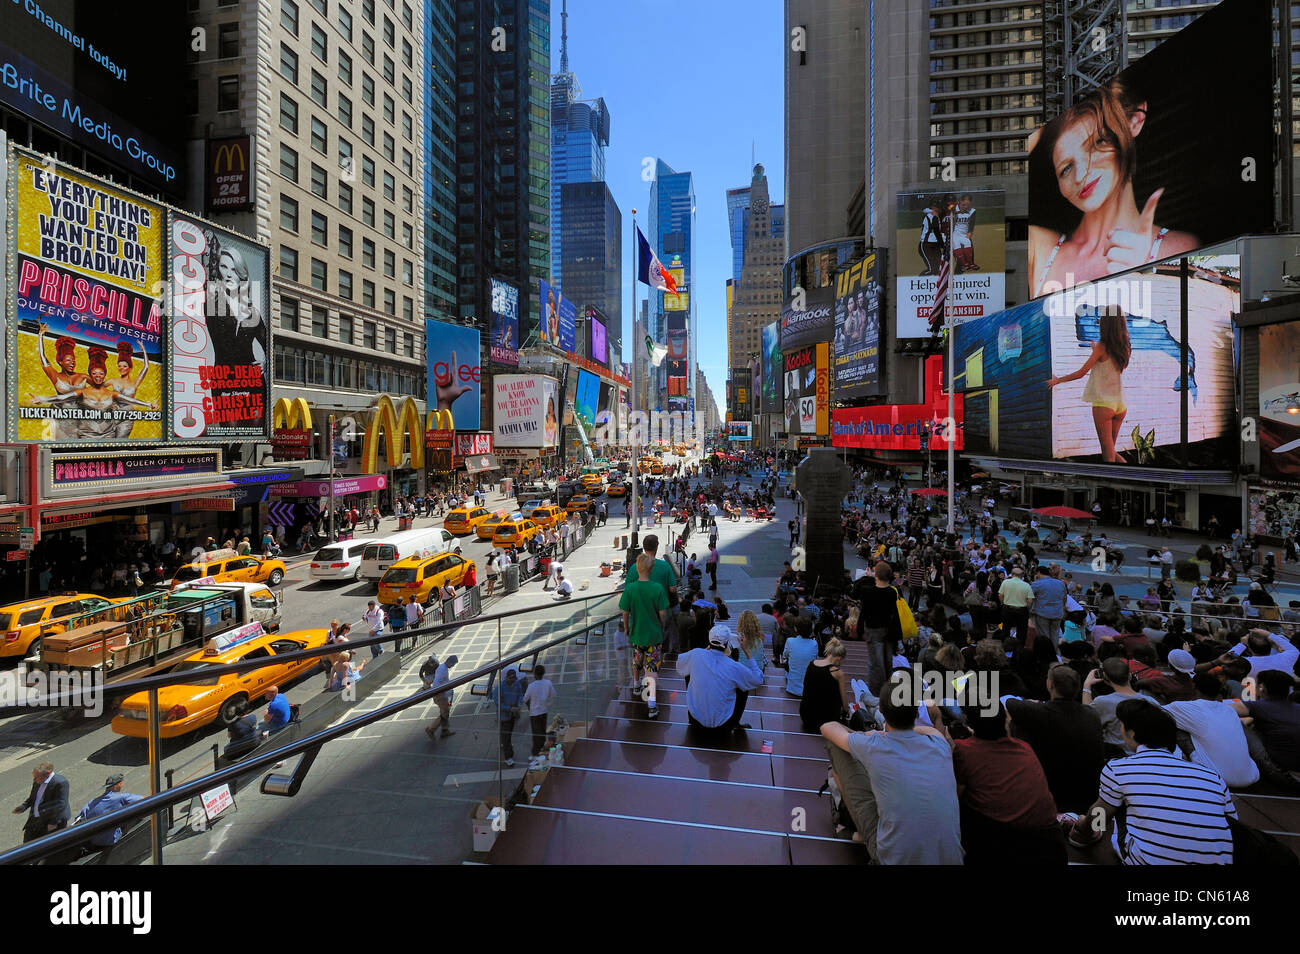 United States, New York, Manhattan, Midtown, Times Square, street scene - Stock Image